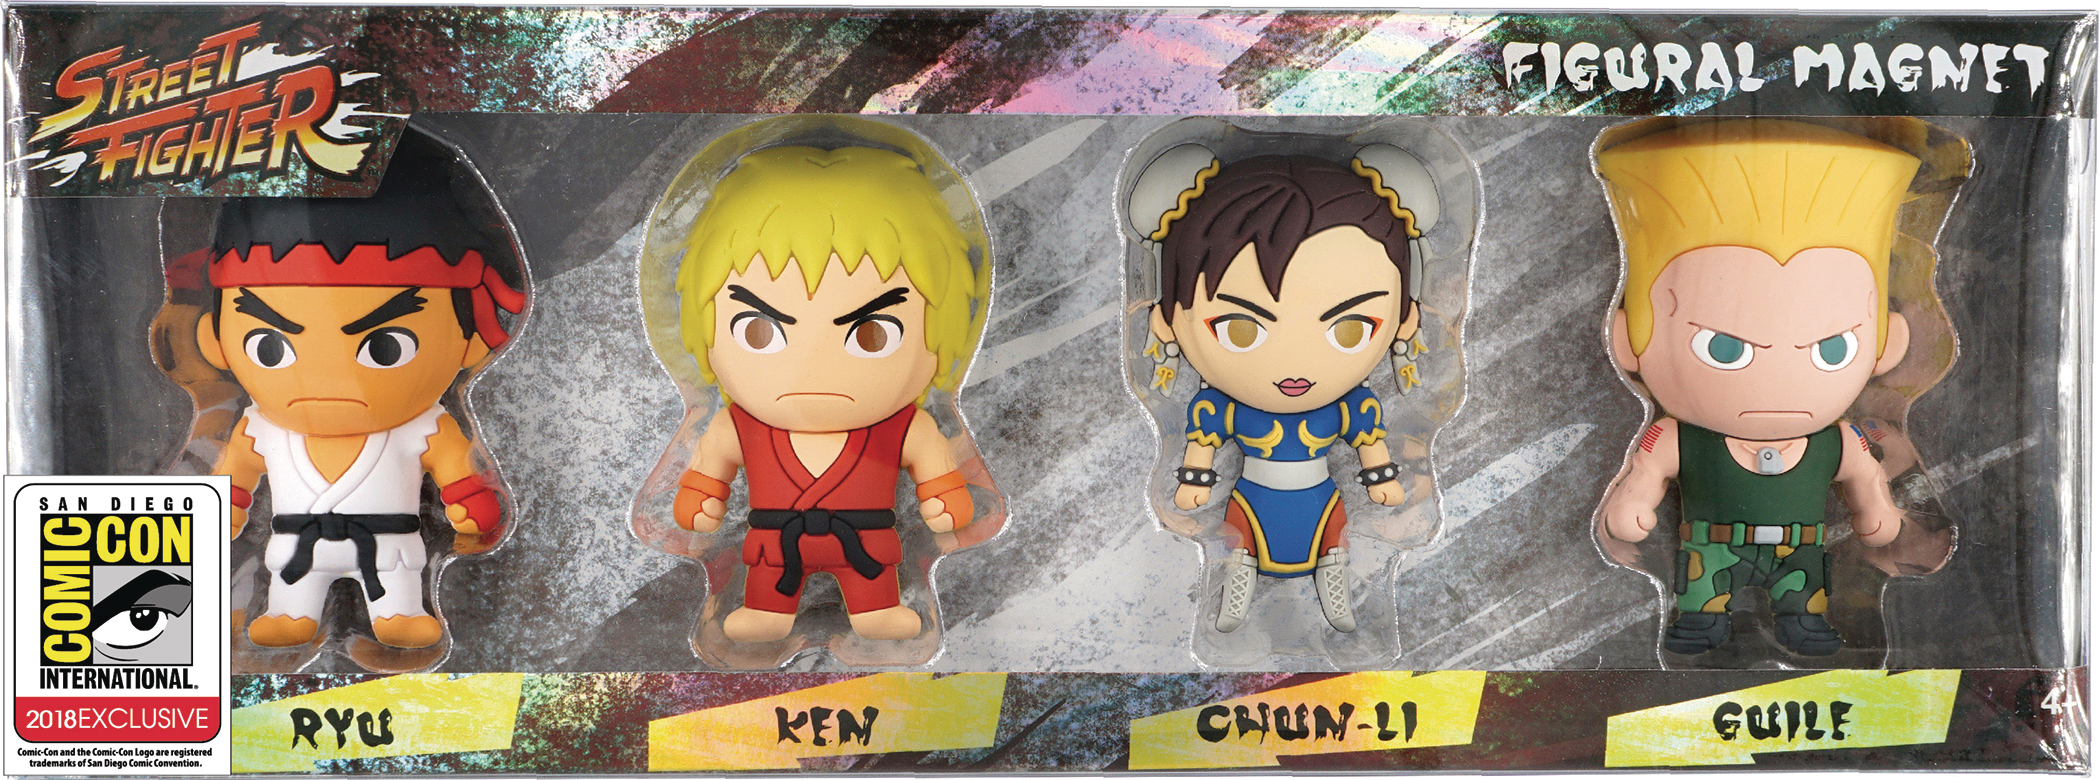 STREET FIGHTER 3D FOAM KEY RING CON EXCL 4PC SET